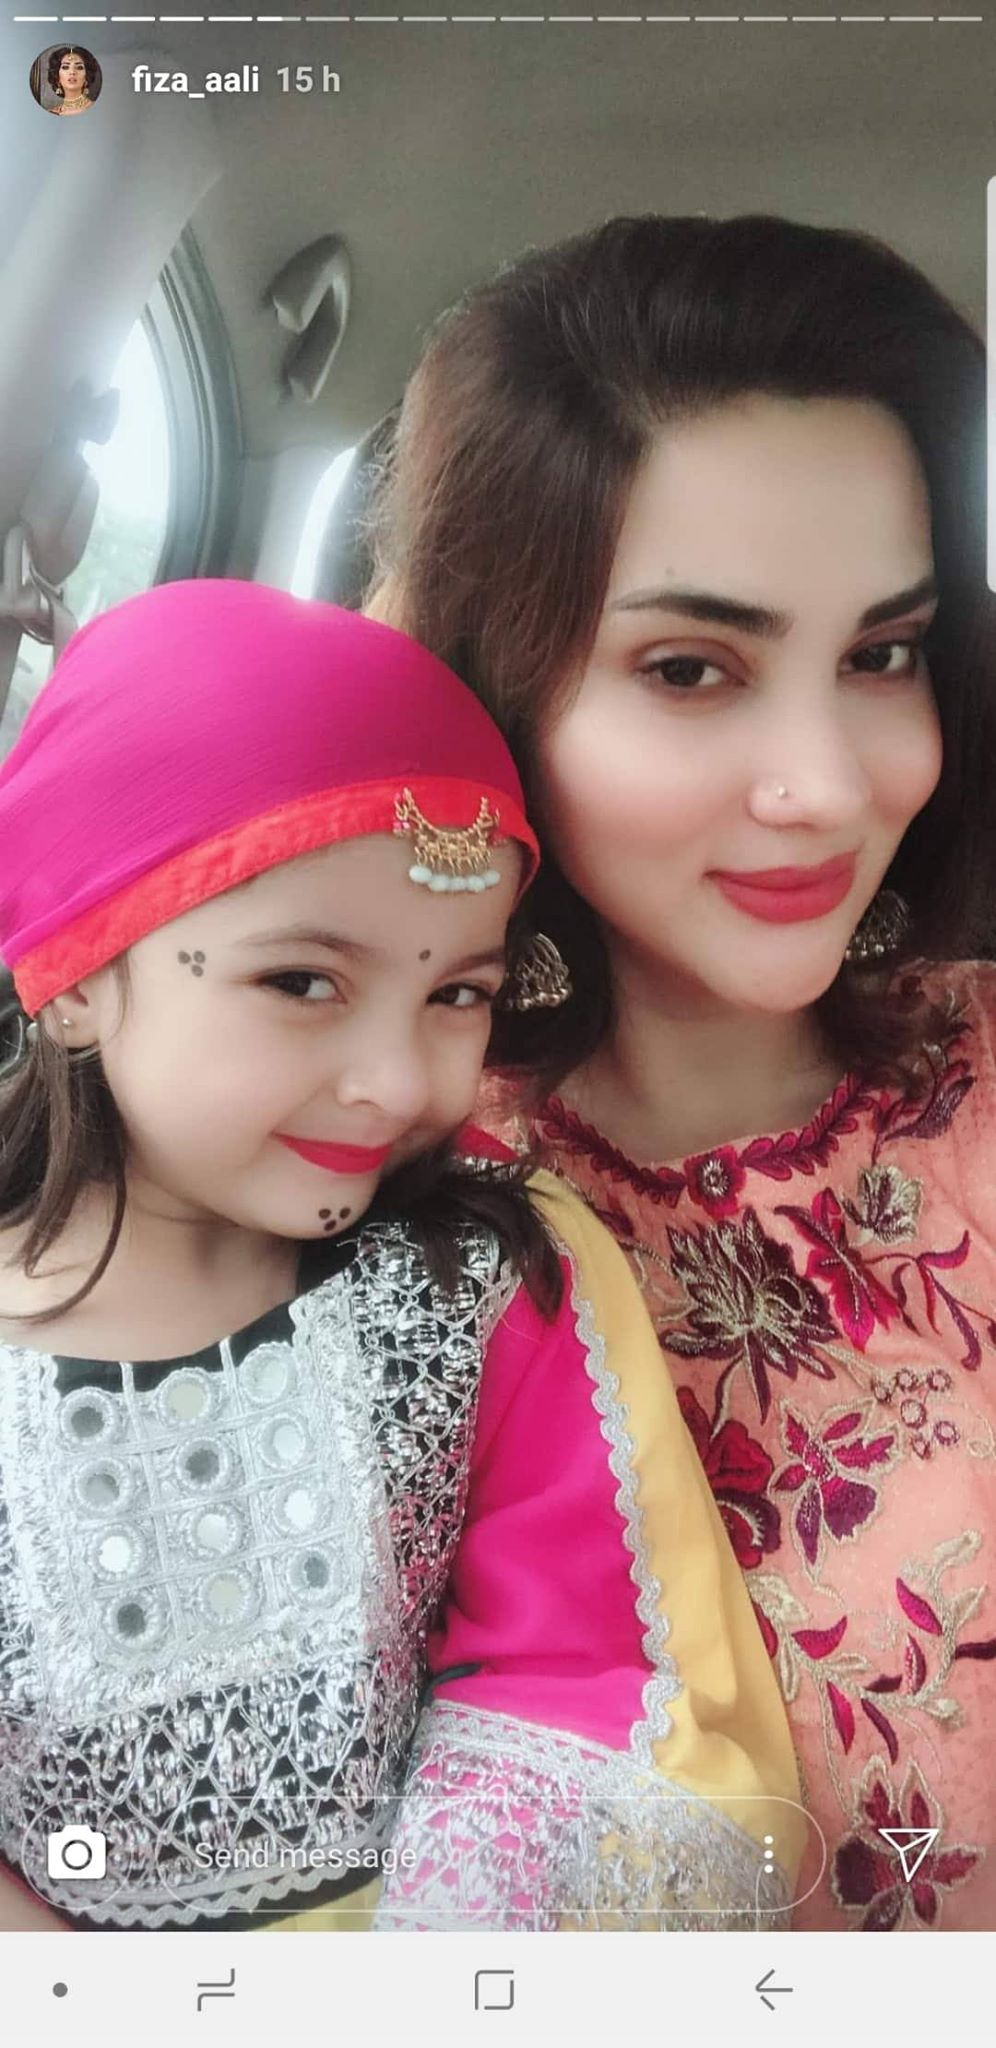 fiza ali with herbeautiful daughter faraal on eid day